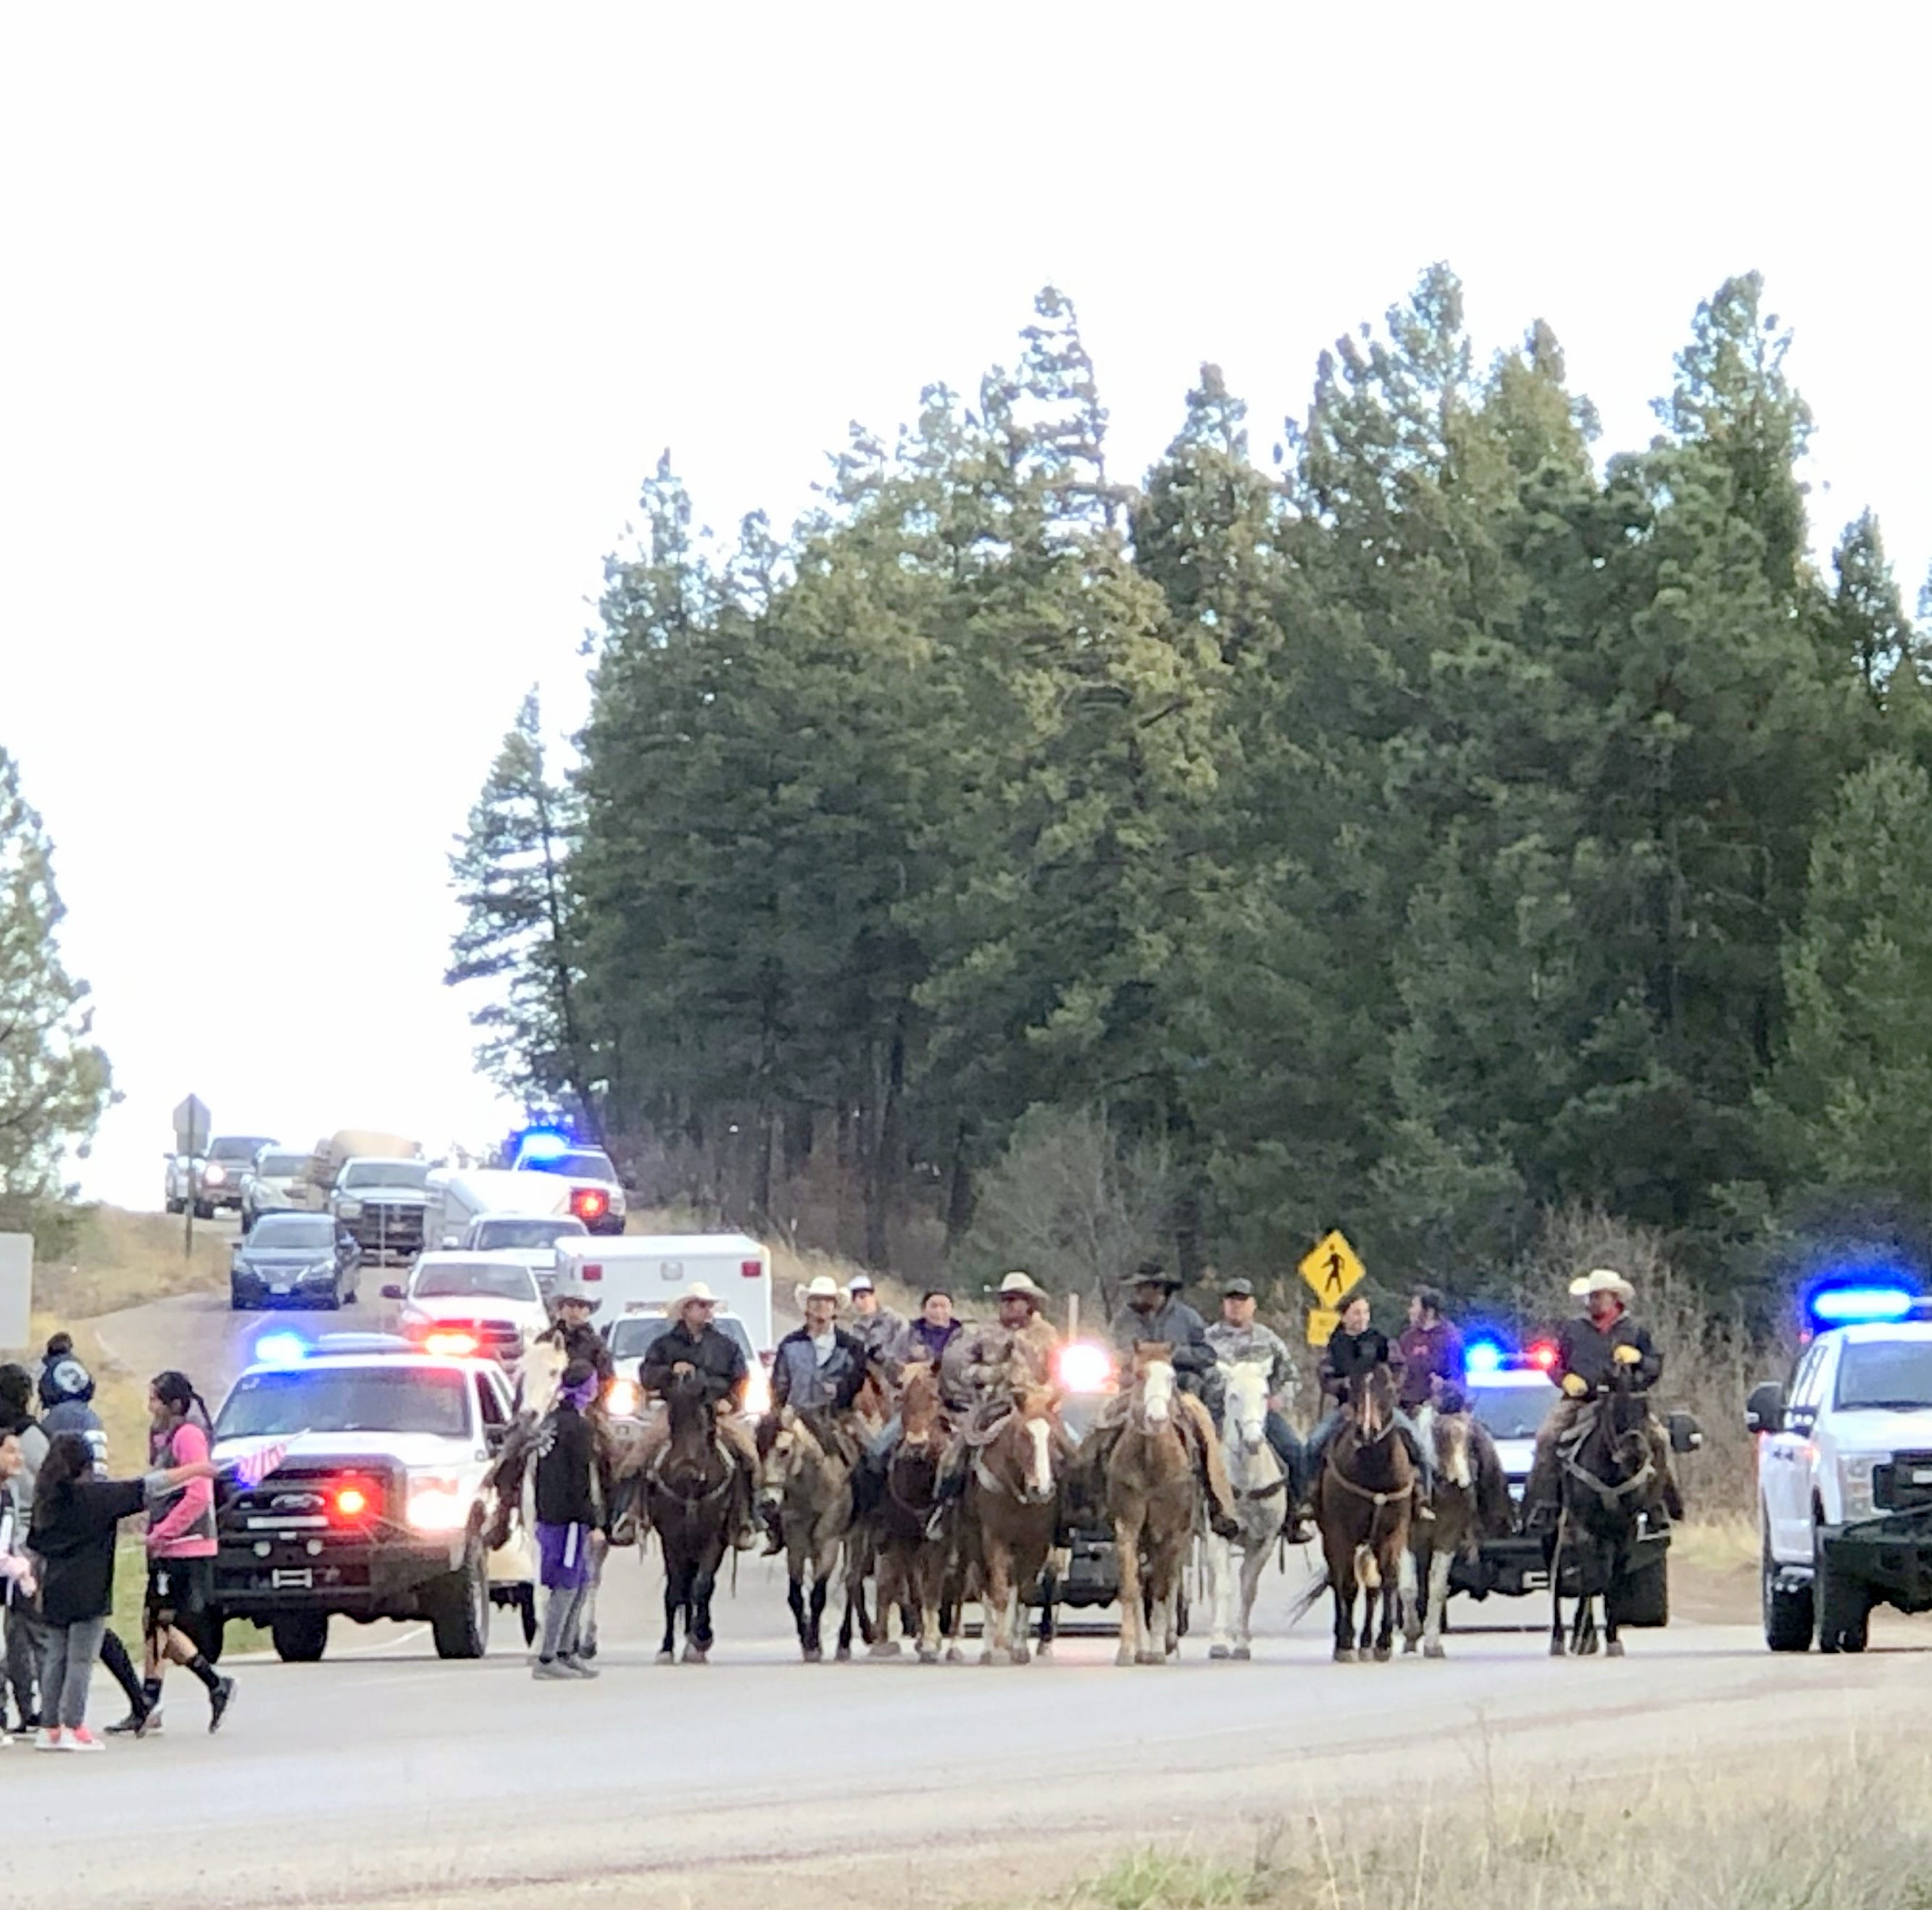 Annual blessing run reminds tribal members to give thanks for their land